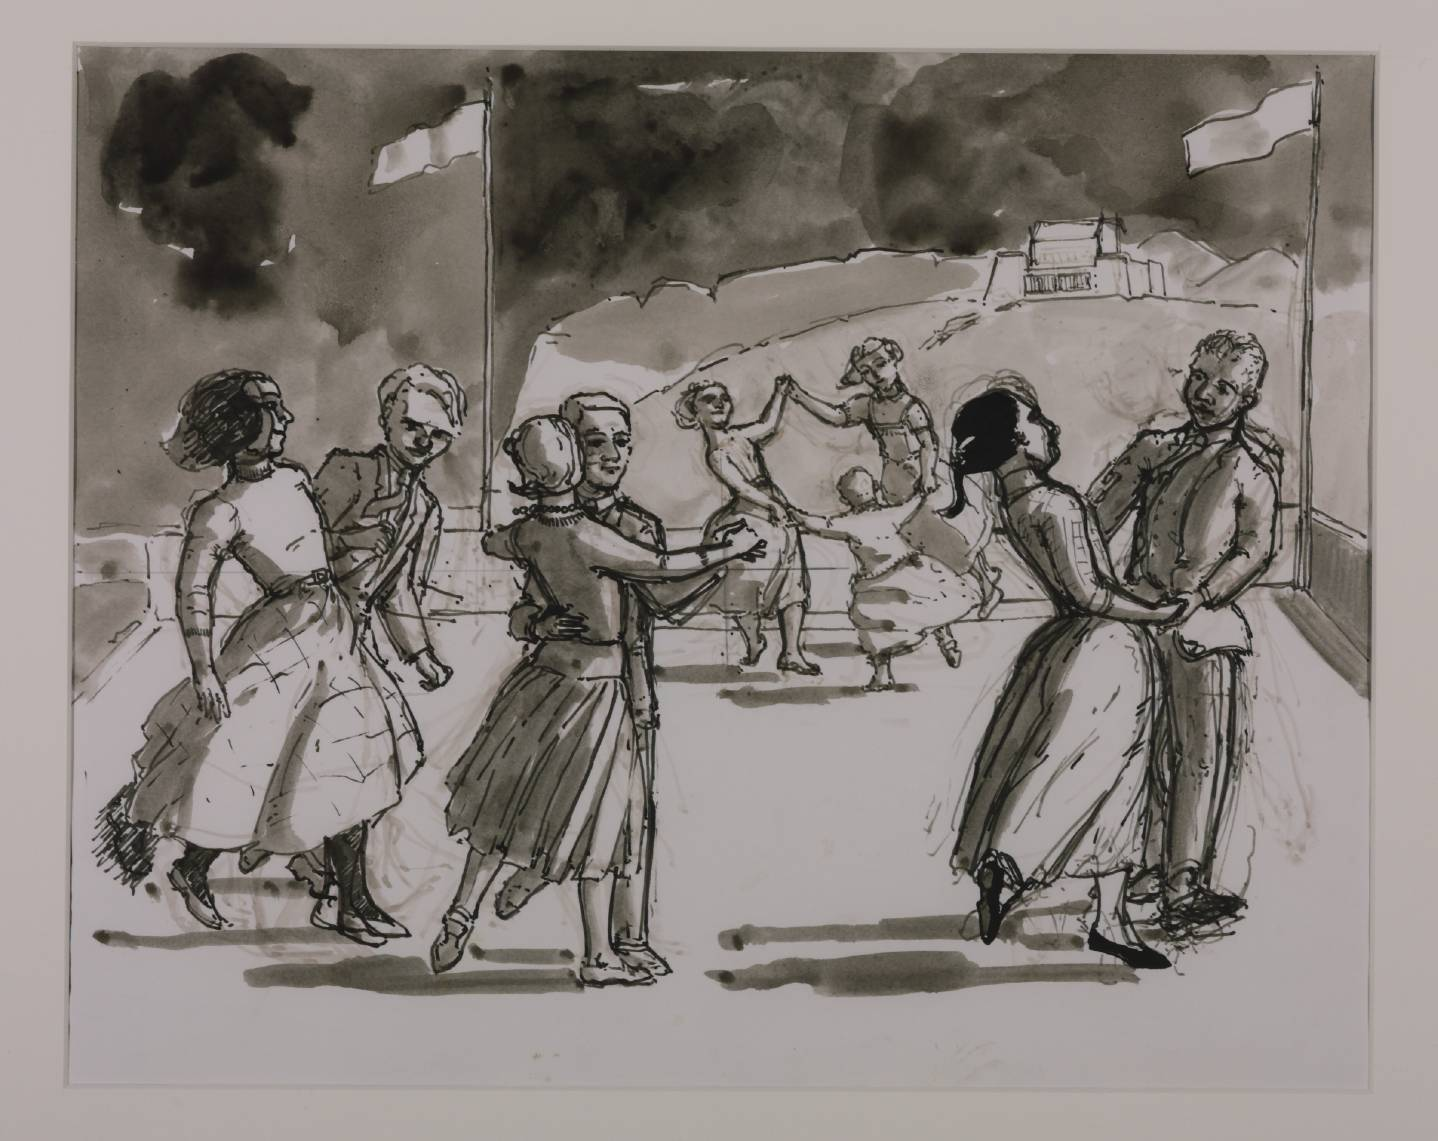 Study for 'The Dance', Paula rego (Image courtesy of the Tate)